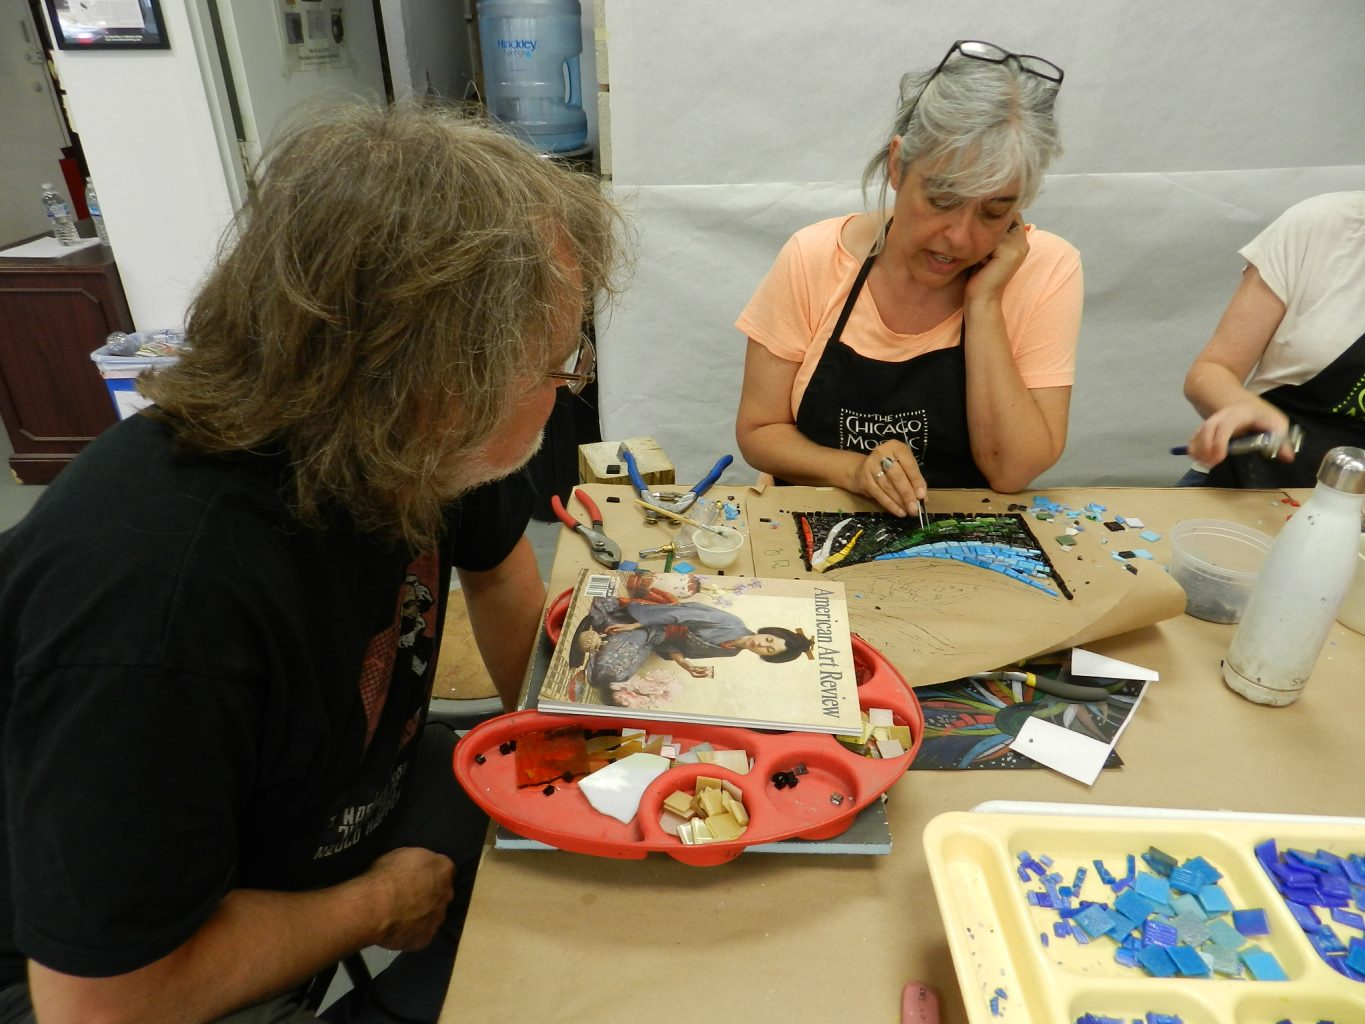 Chicago Mosaic School: Gary Drostle and student discuss mosaic technicalities.